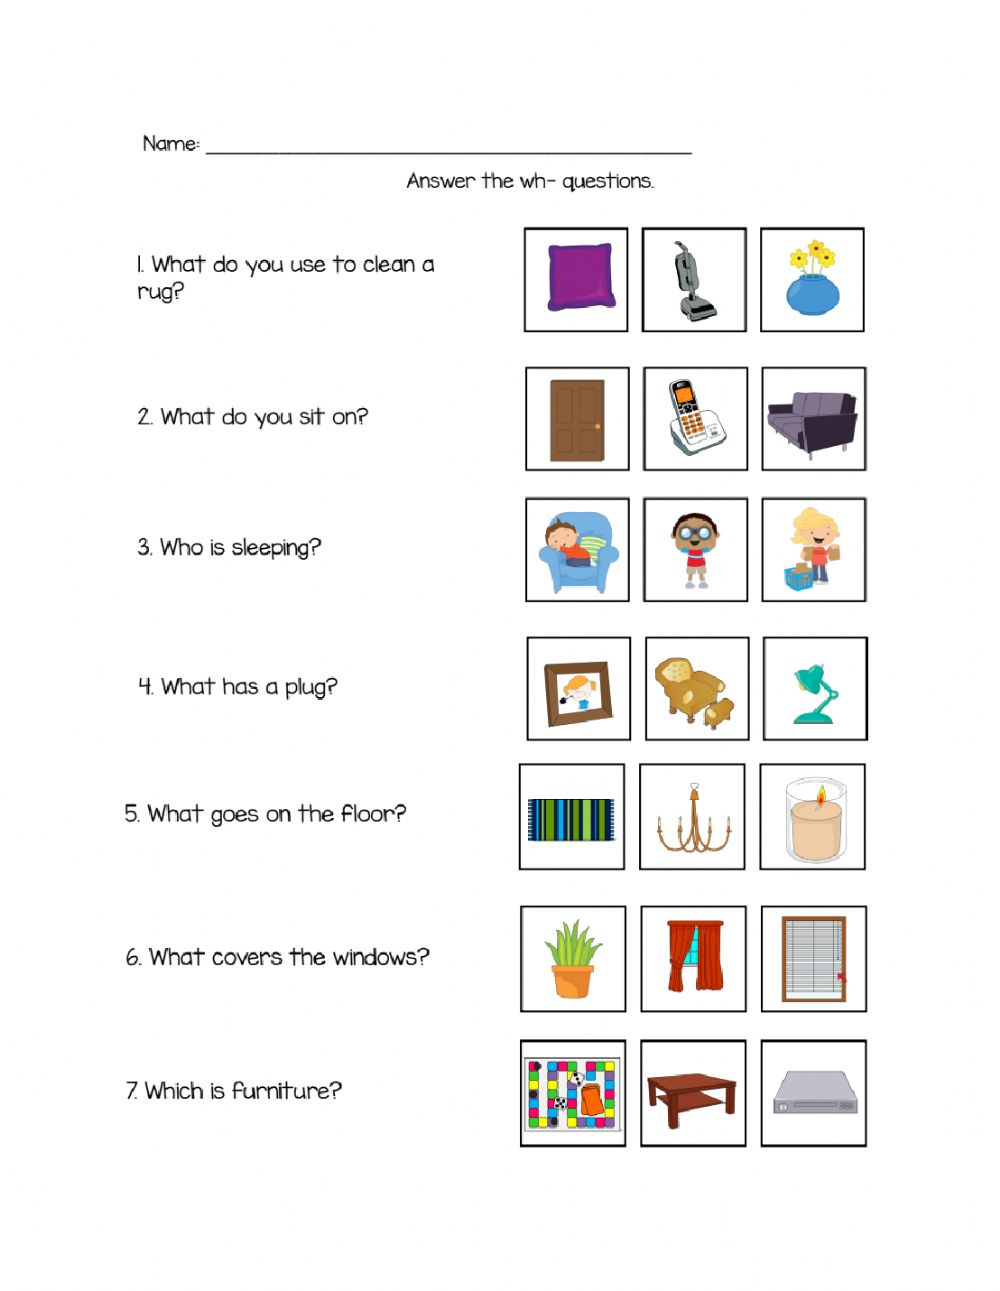 Living Room Answer Wh- Questions worksheet